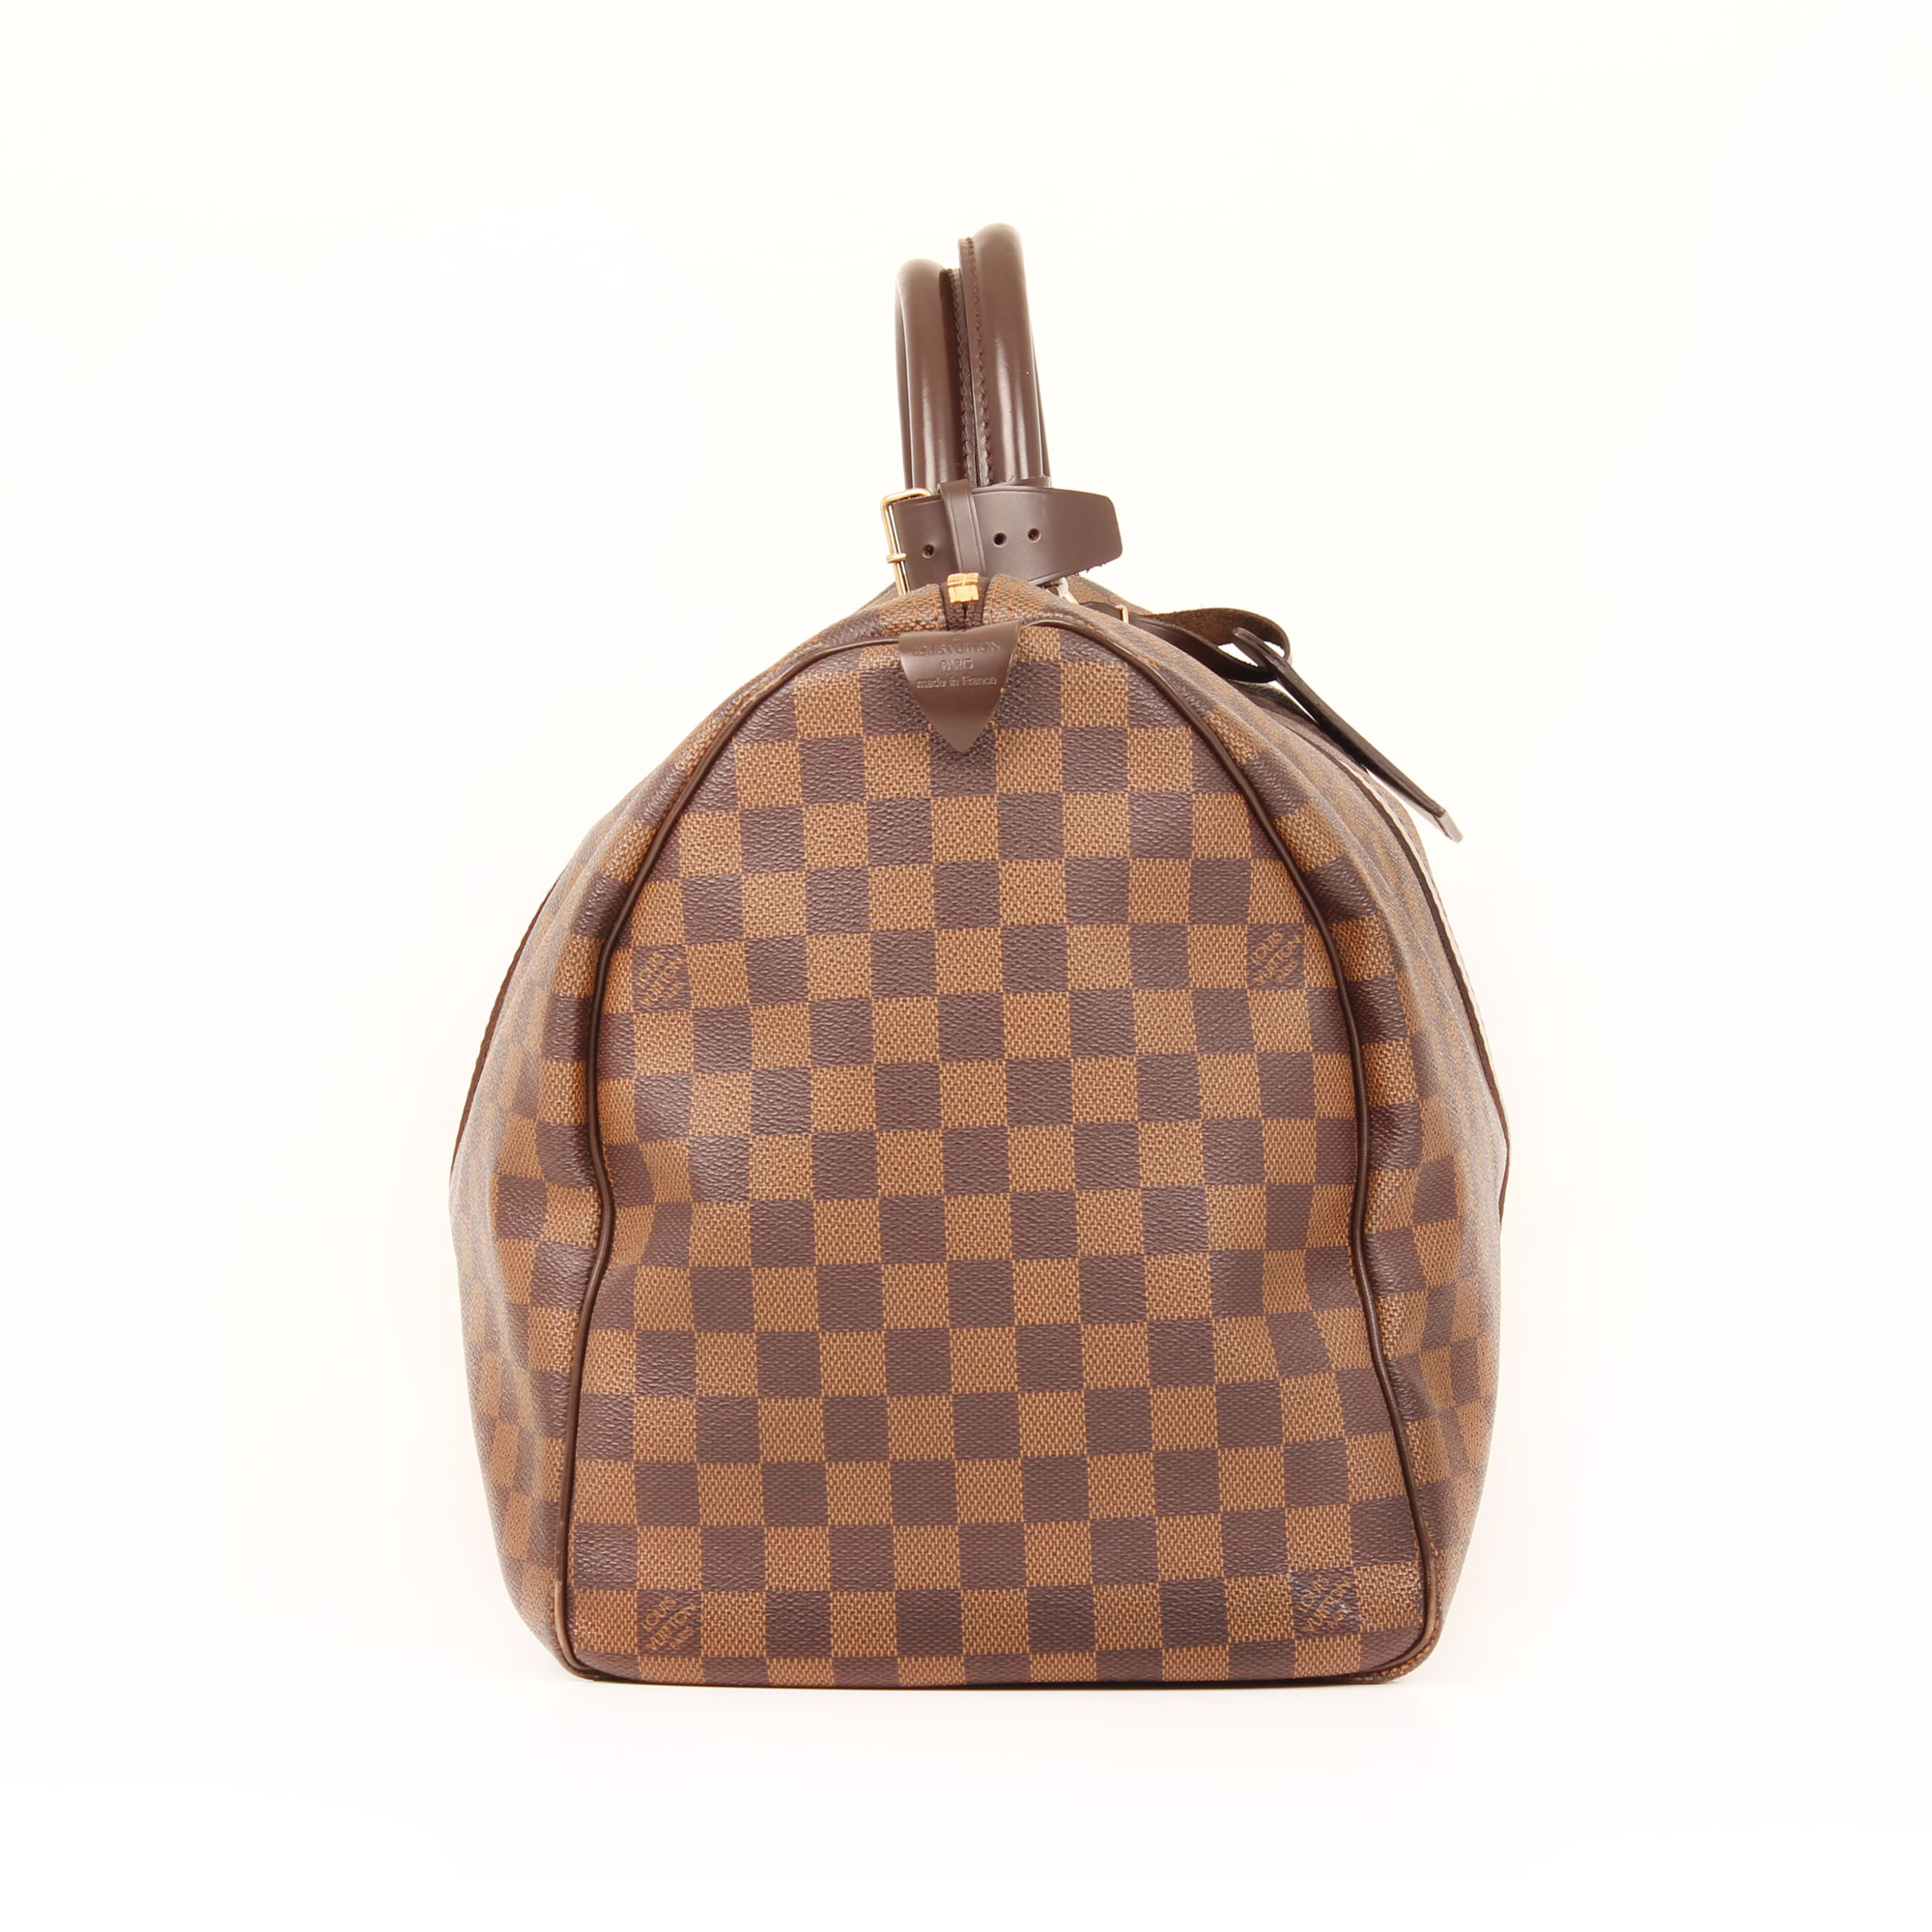 travel-bag-louis-vuitton-keepall-50-damier-ebene-lateral-2